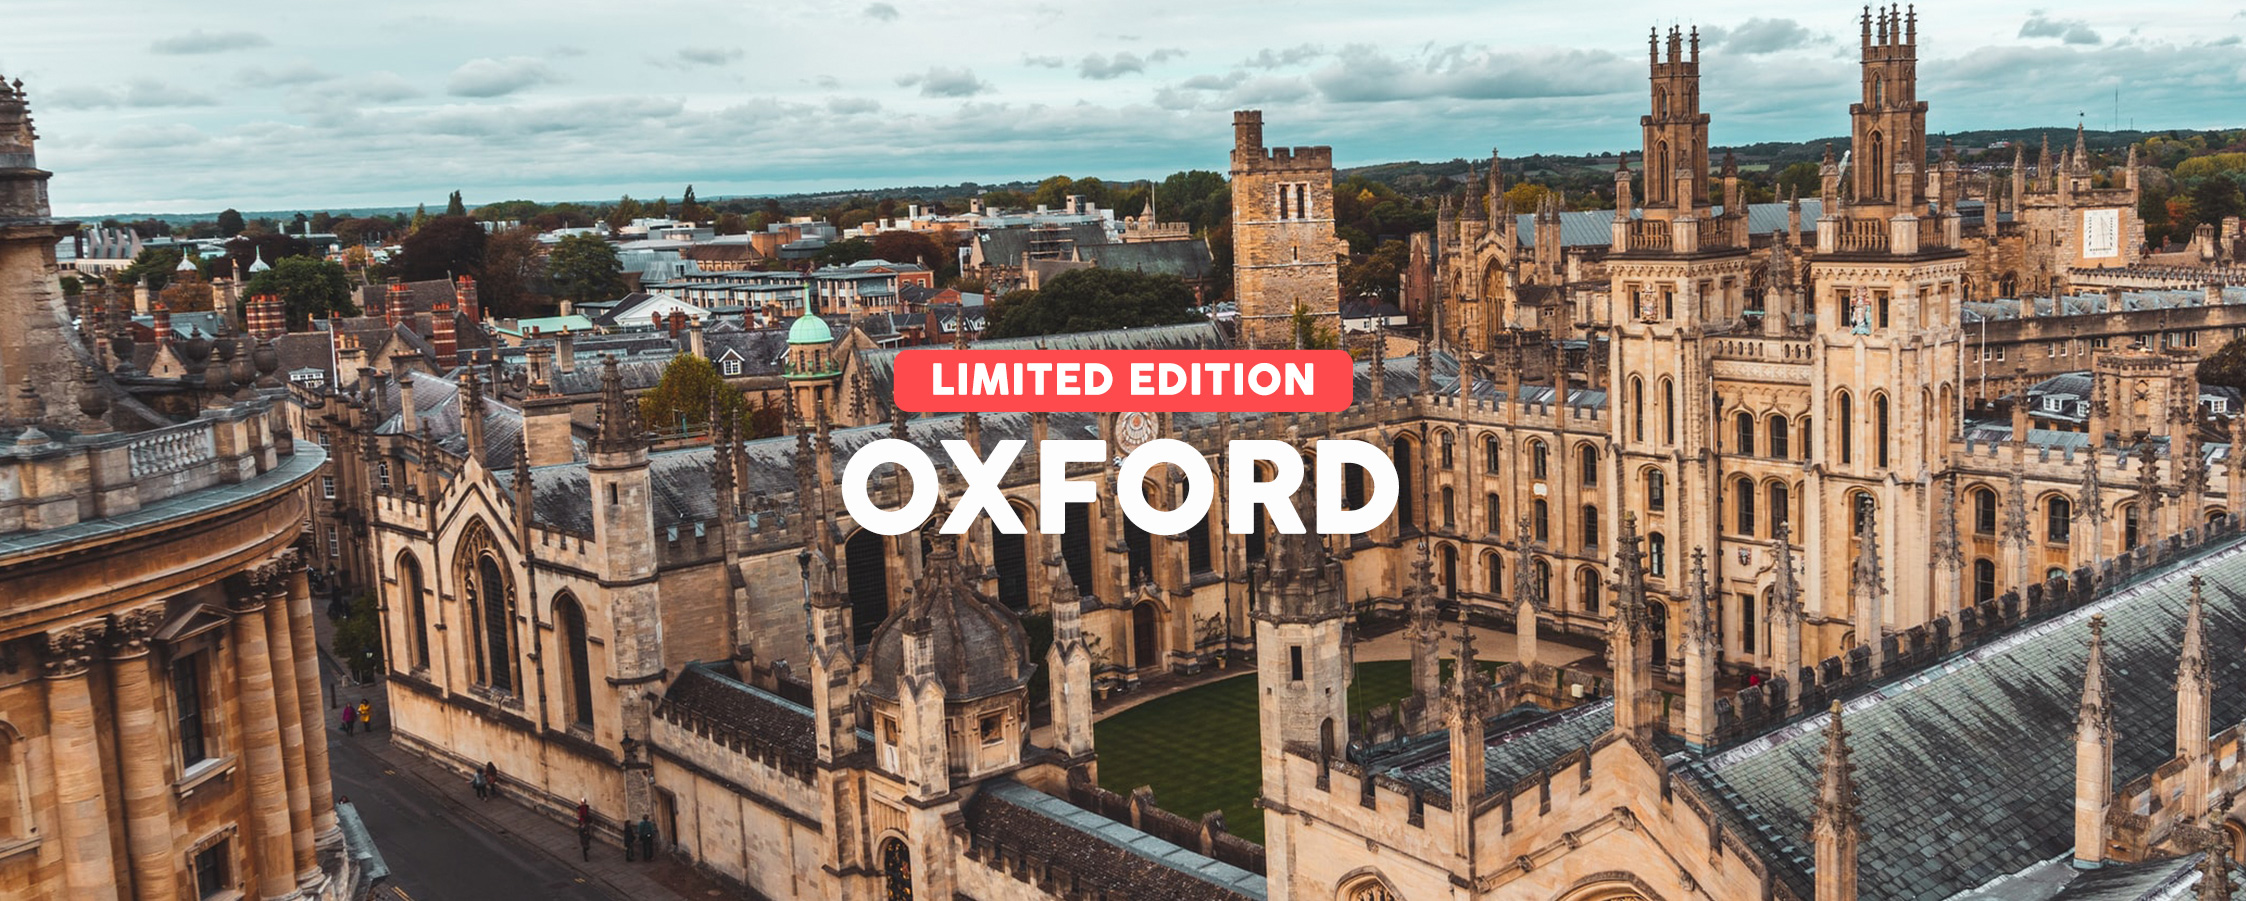 51DN-Frontpage-Banner-Oxford1